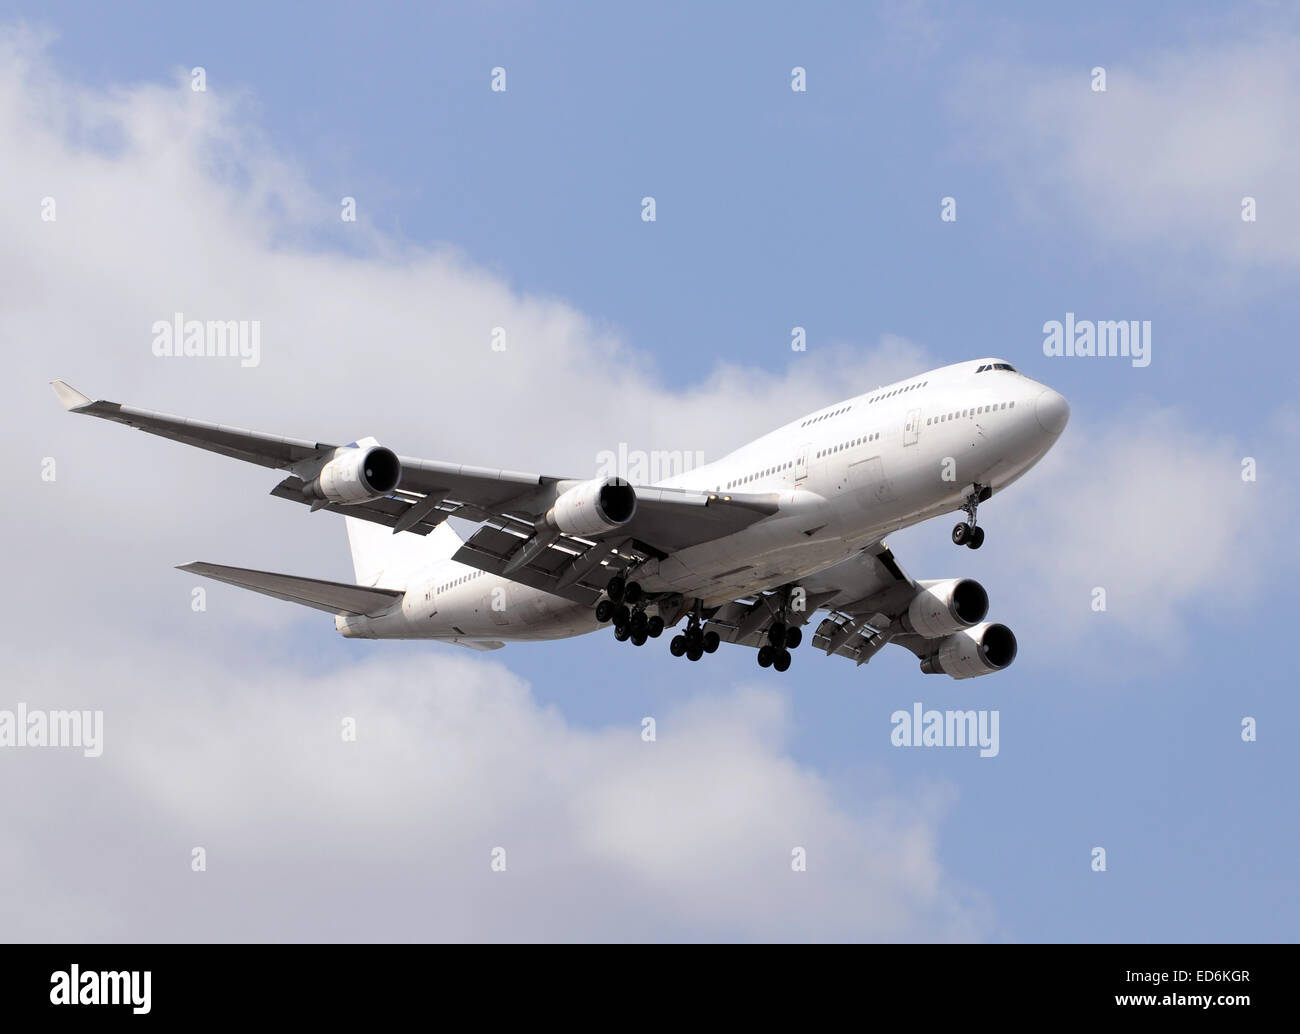 Heavy widebody Boeing 747 passenger jet for long distance travel - Stock Image